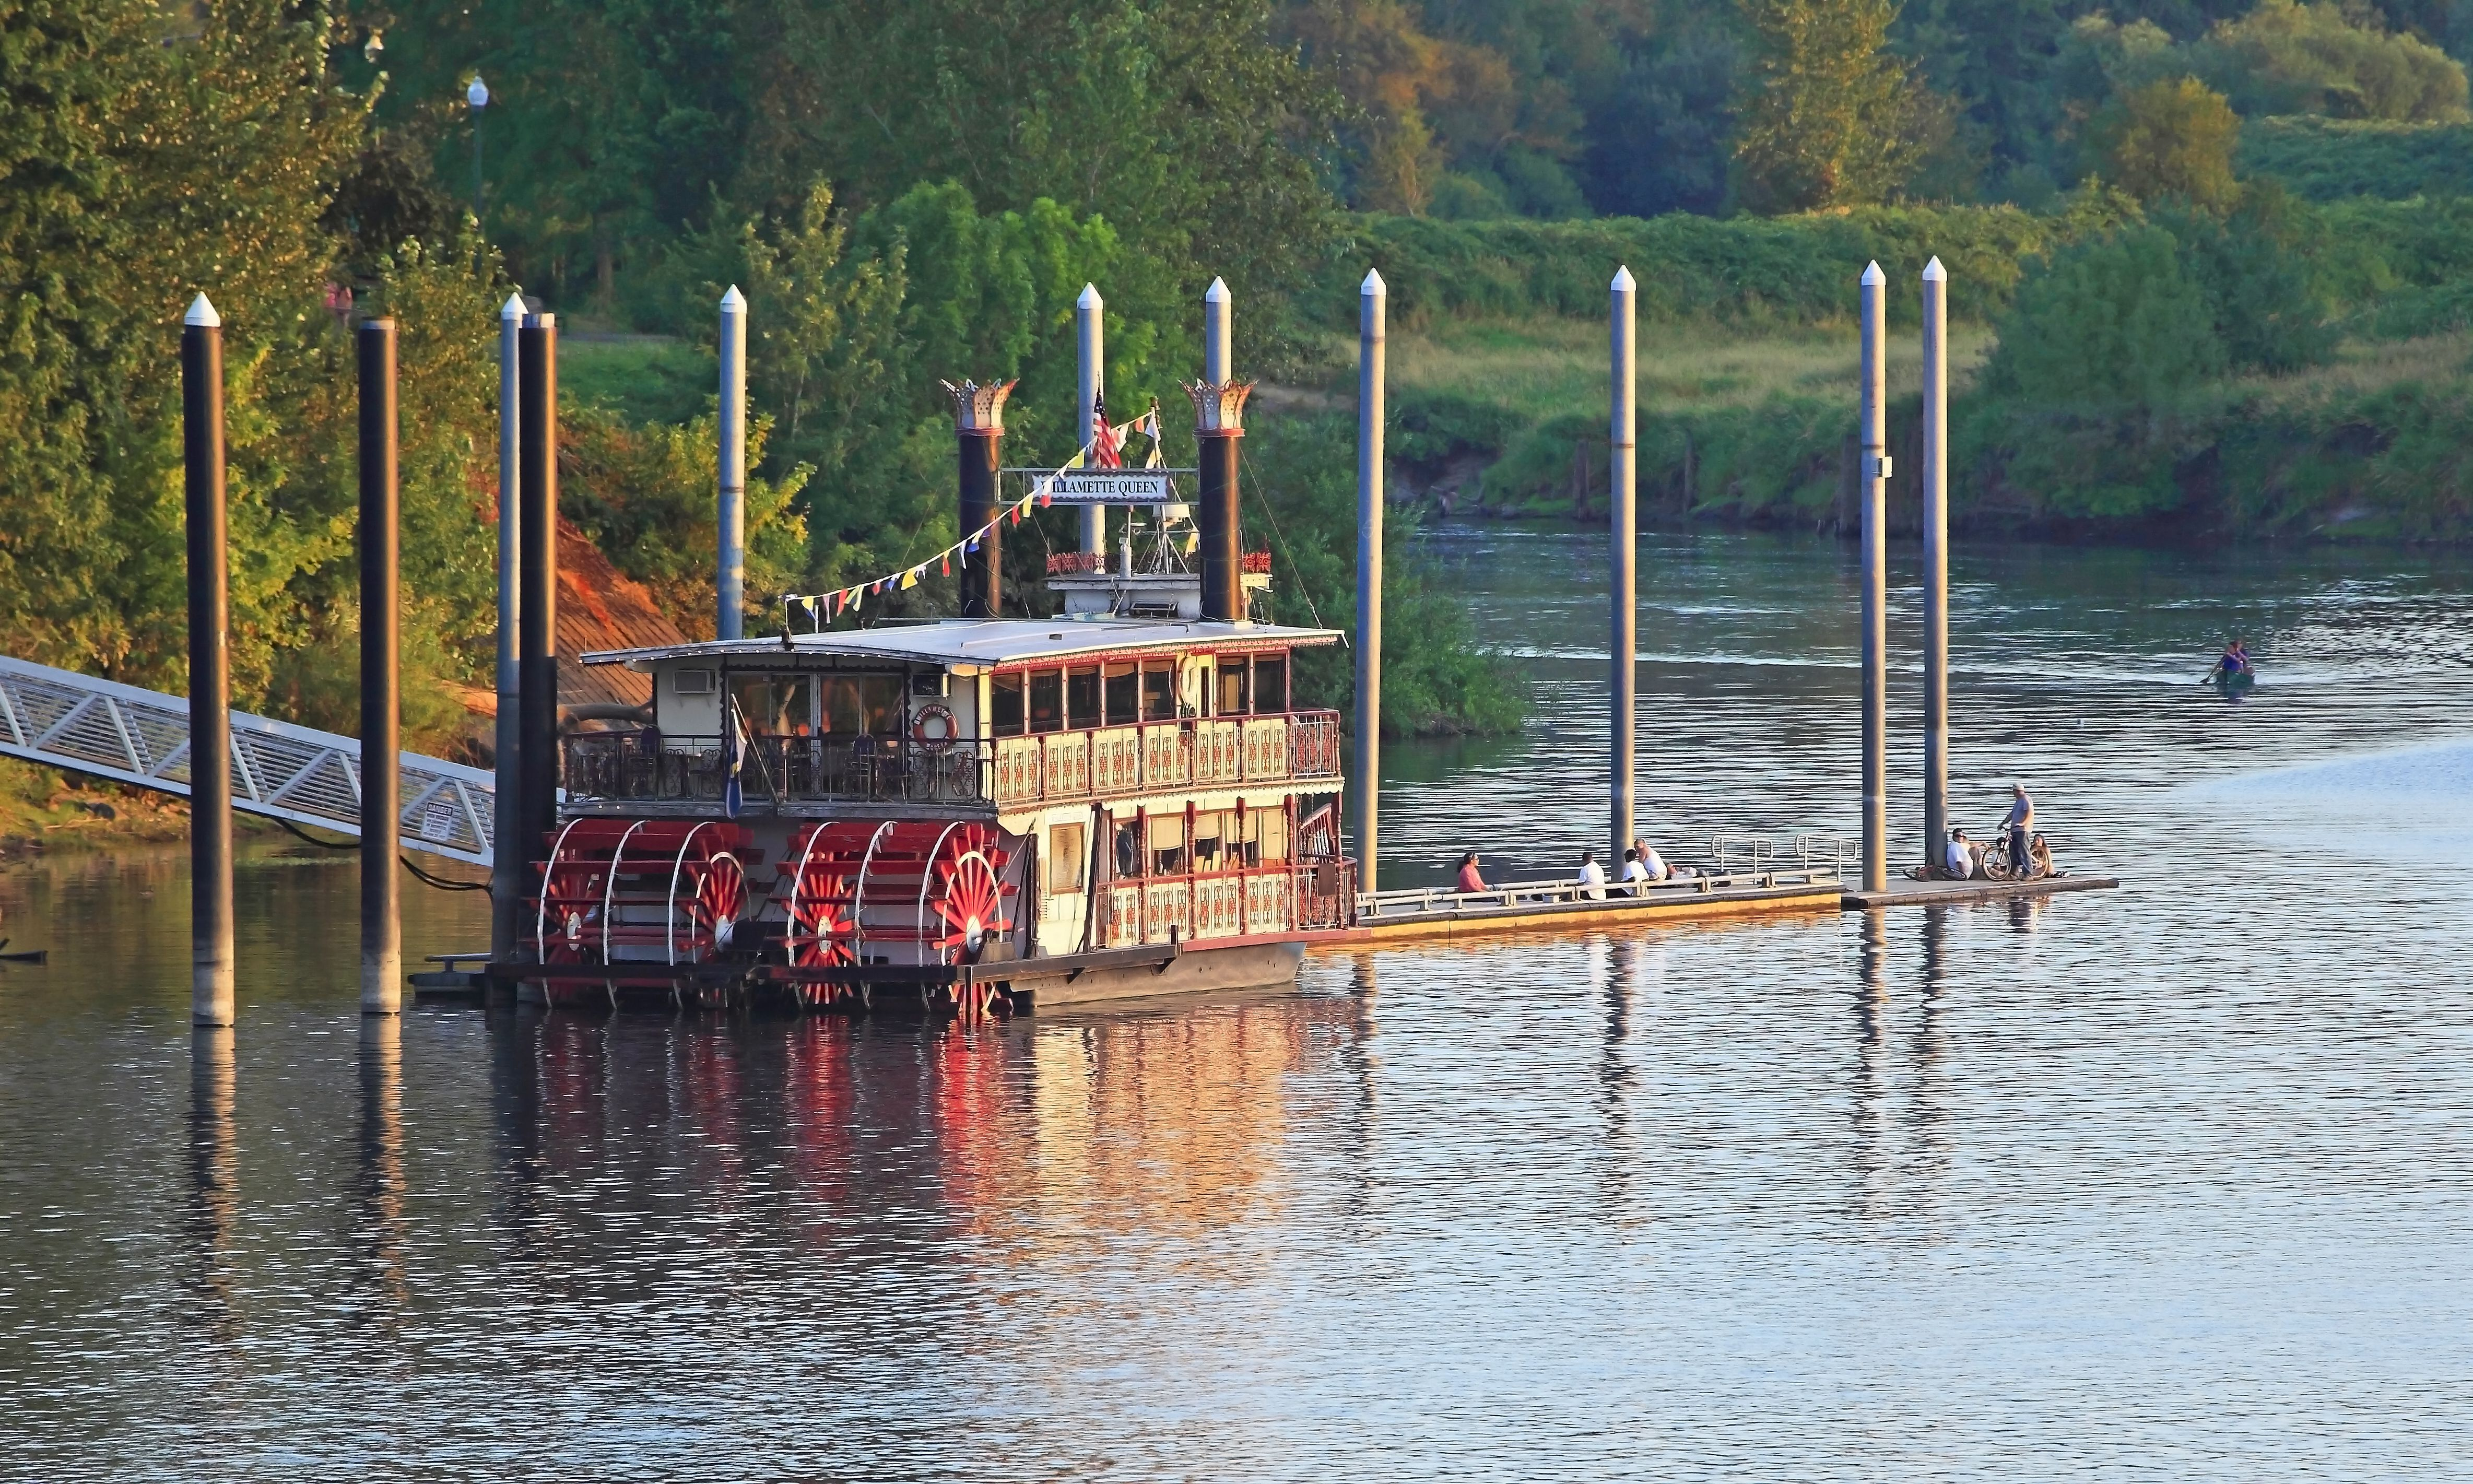 An old-fashioned steam riverboat on at the Salem Riverfront Park